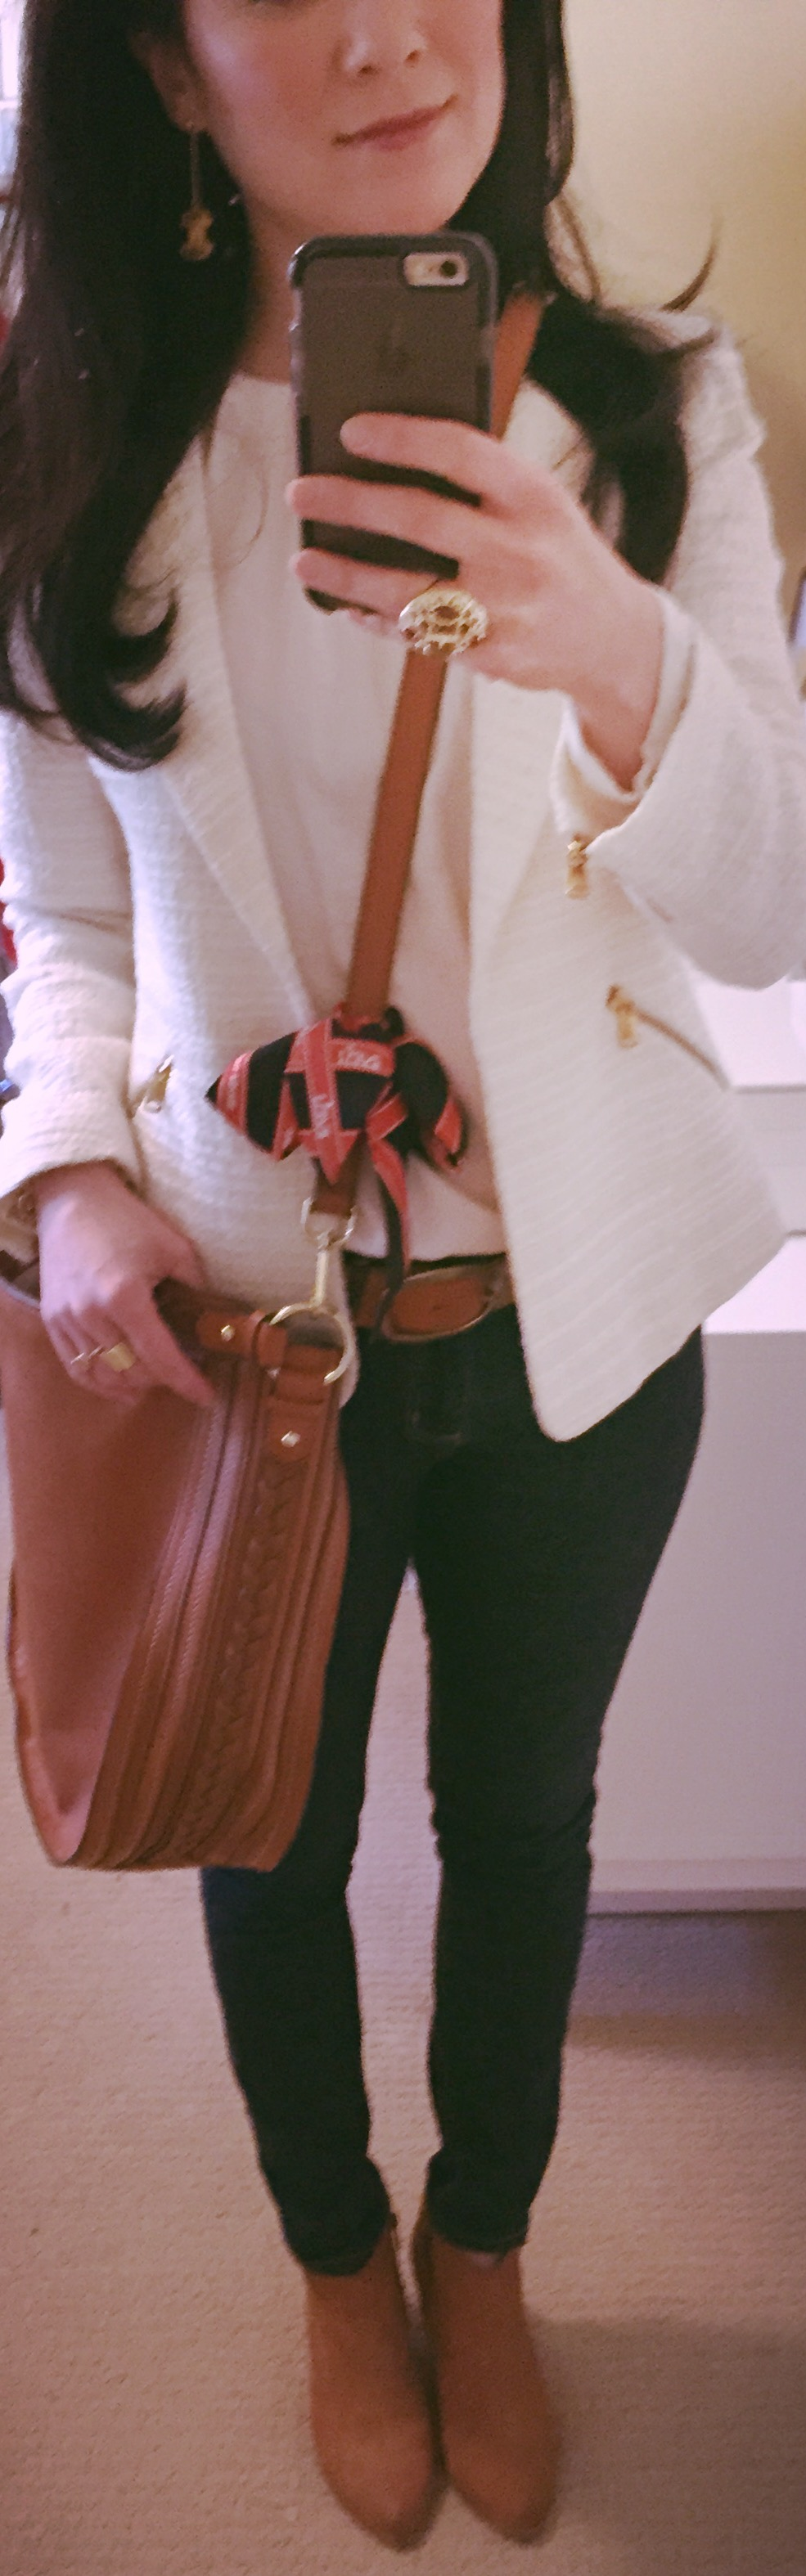 March 5, Accessorized with Hermes